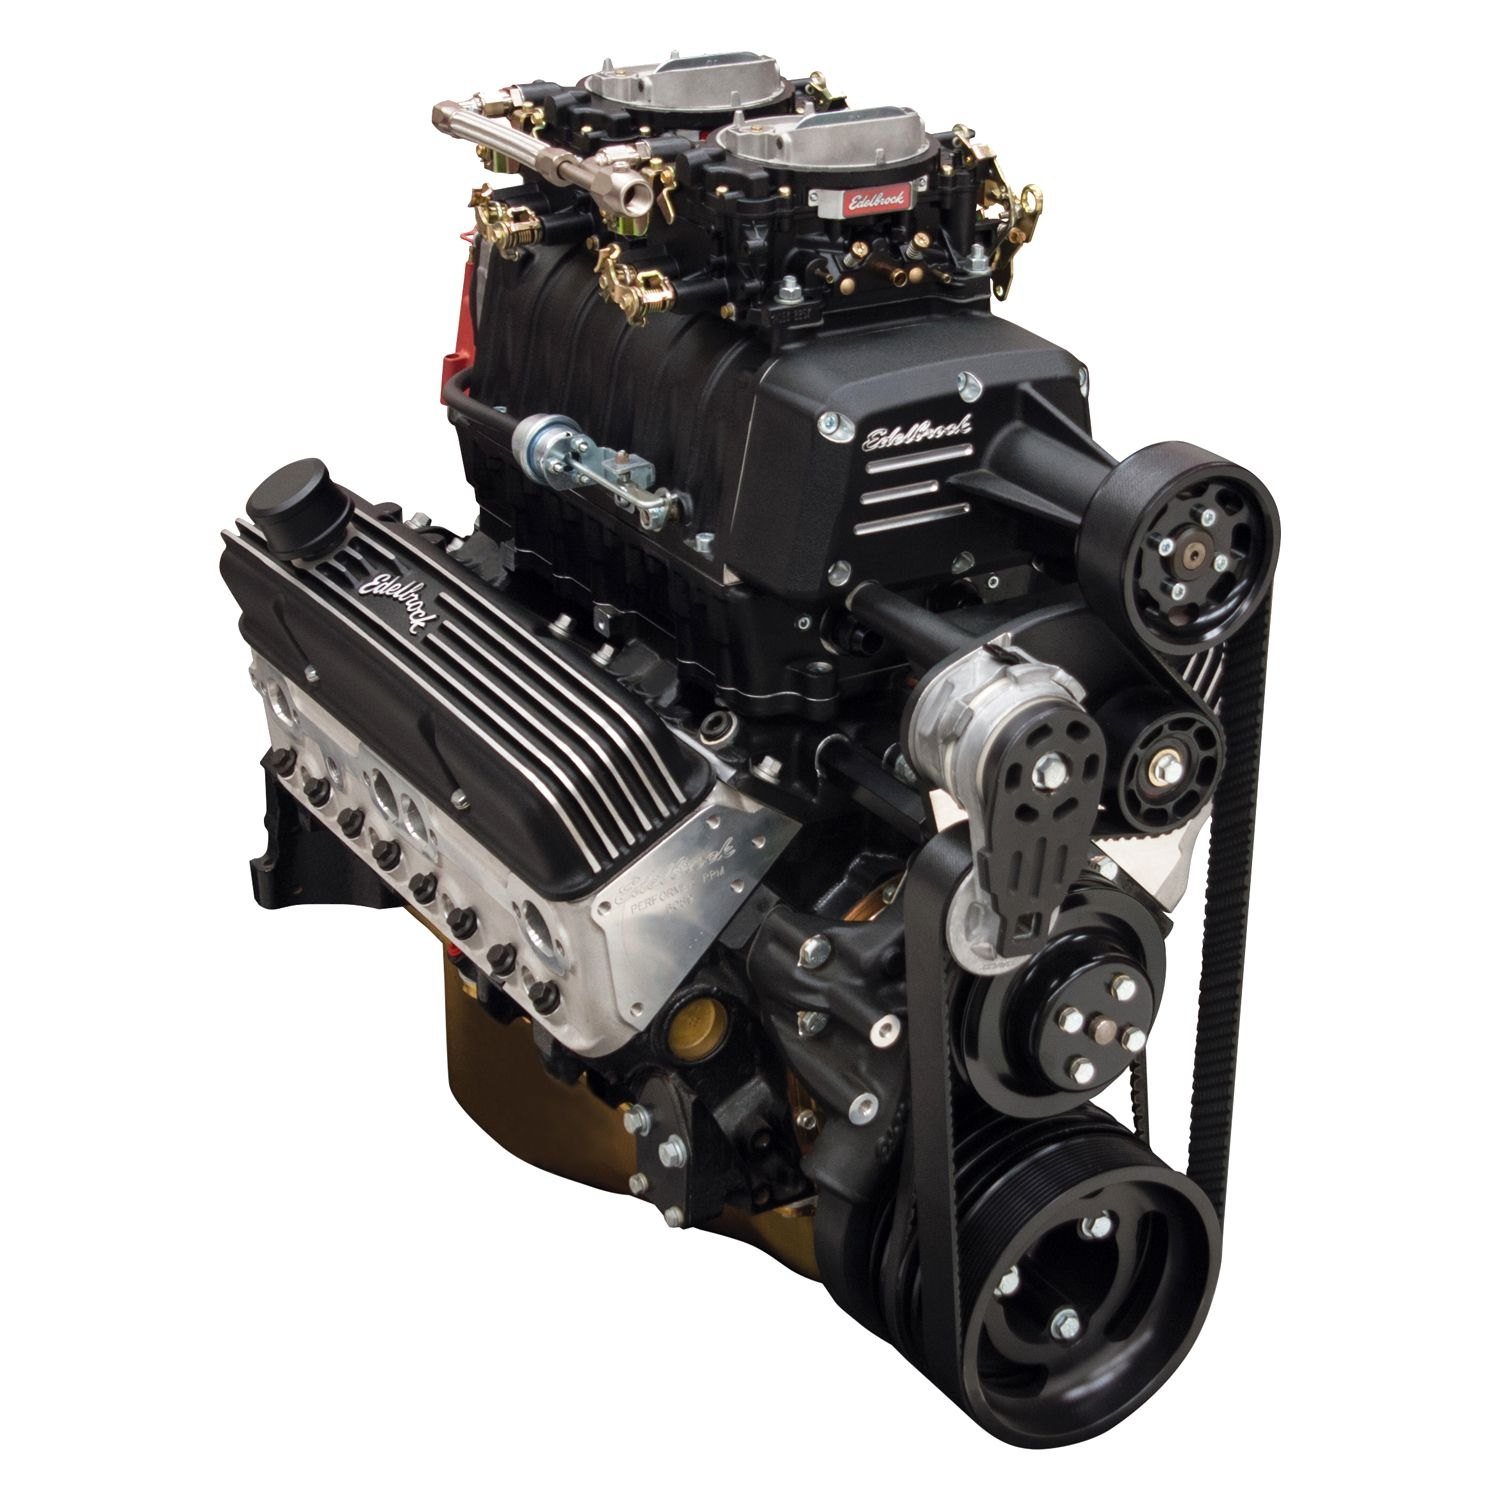 Edelbrock Chevy Camaro 57l With Small Block Generation I 350 Crate Engine Prices E Force Enforcer Supercharged Carbureted 519 Hp 507 Tq Black Engineedelbrock